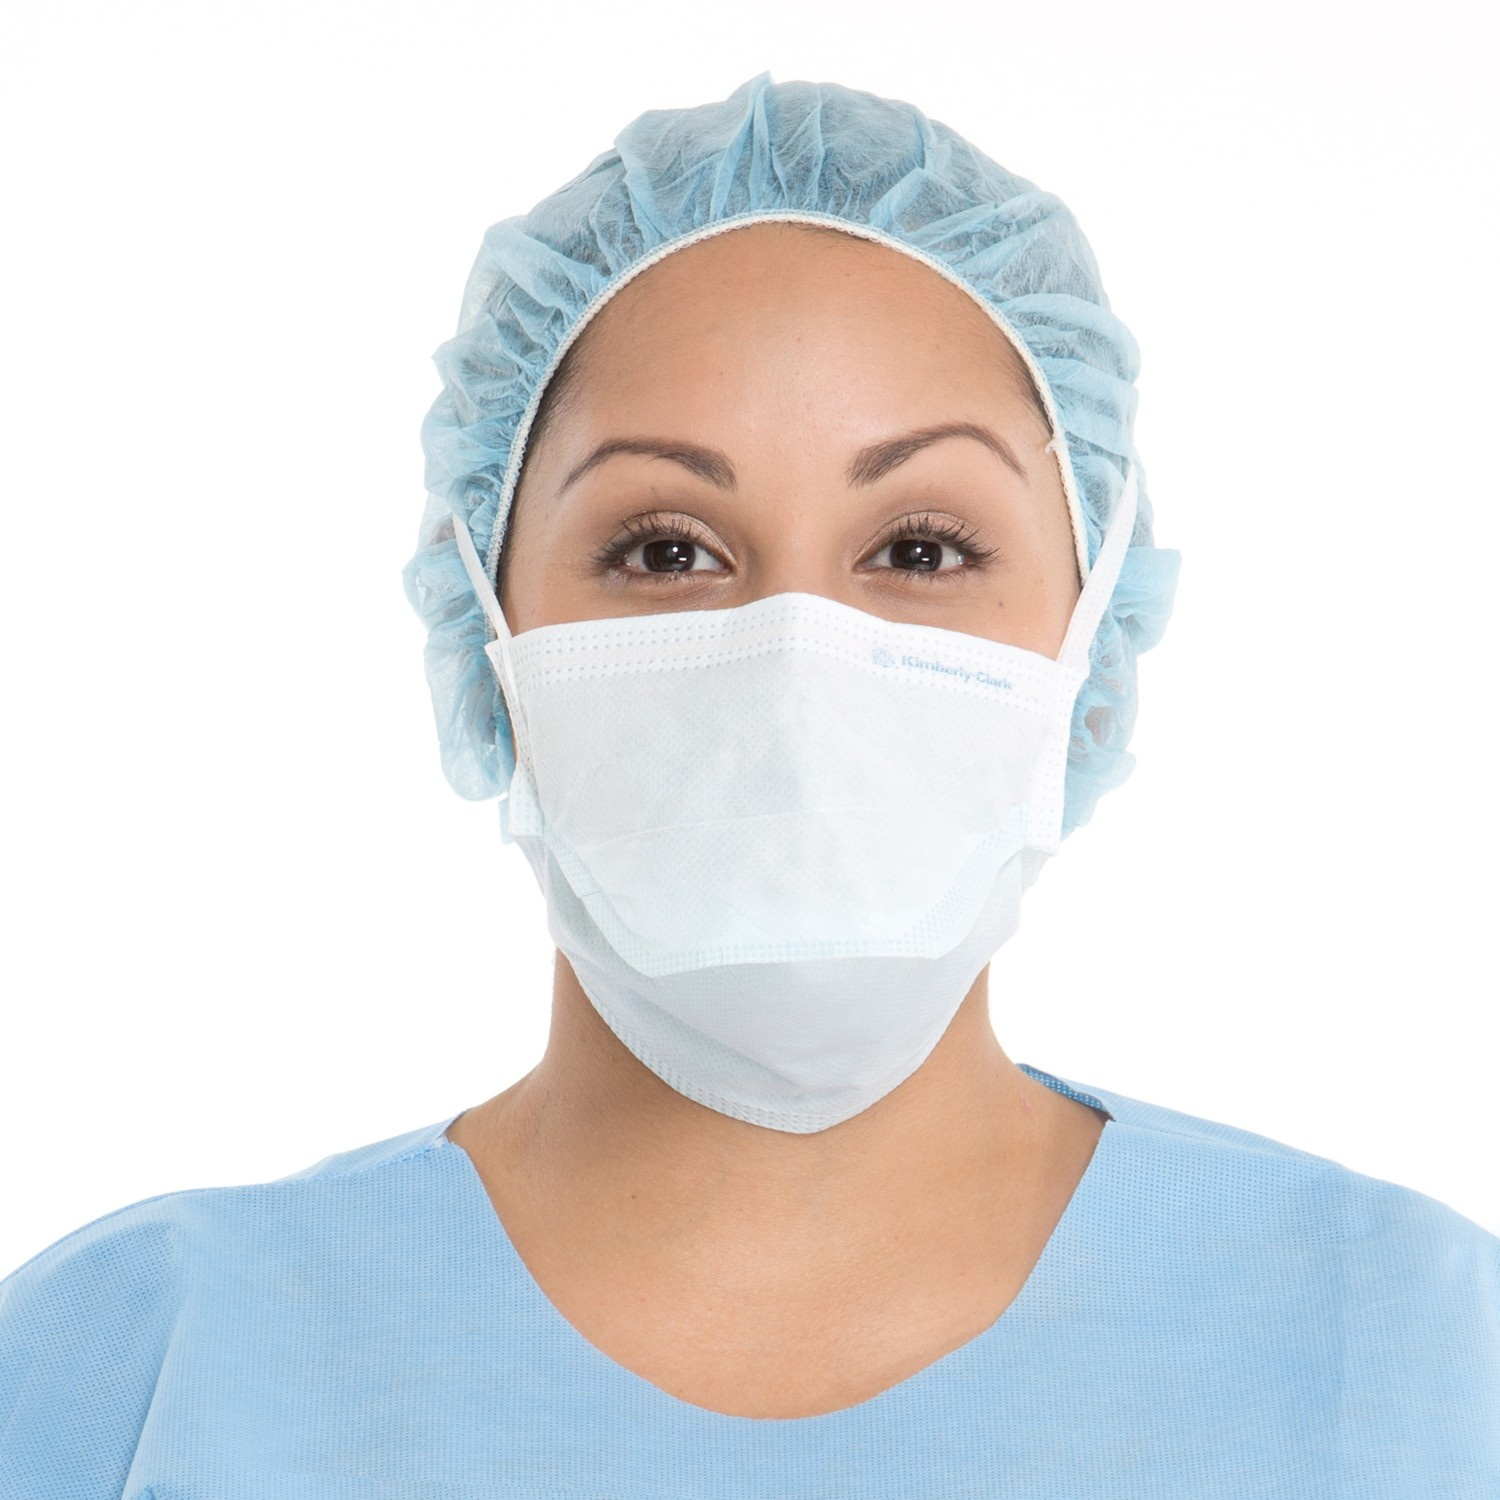 Surgical Halyard Mask Blue Duckbill